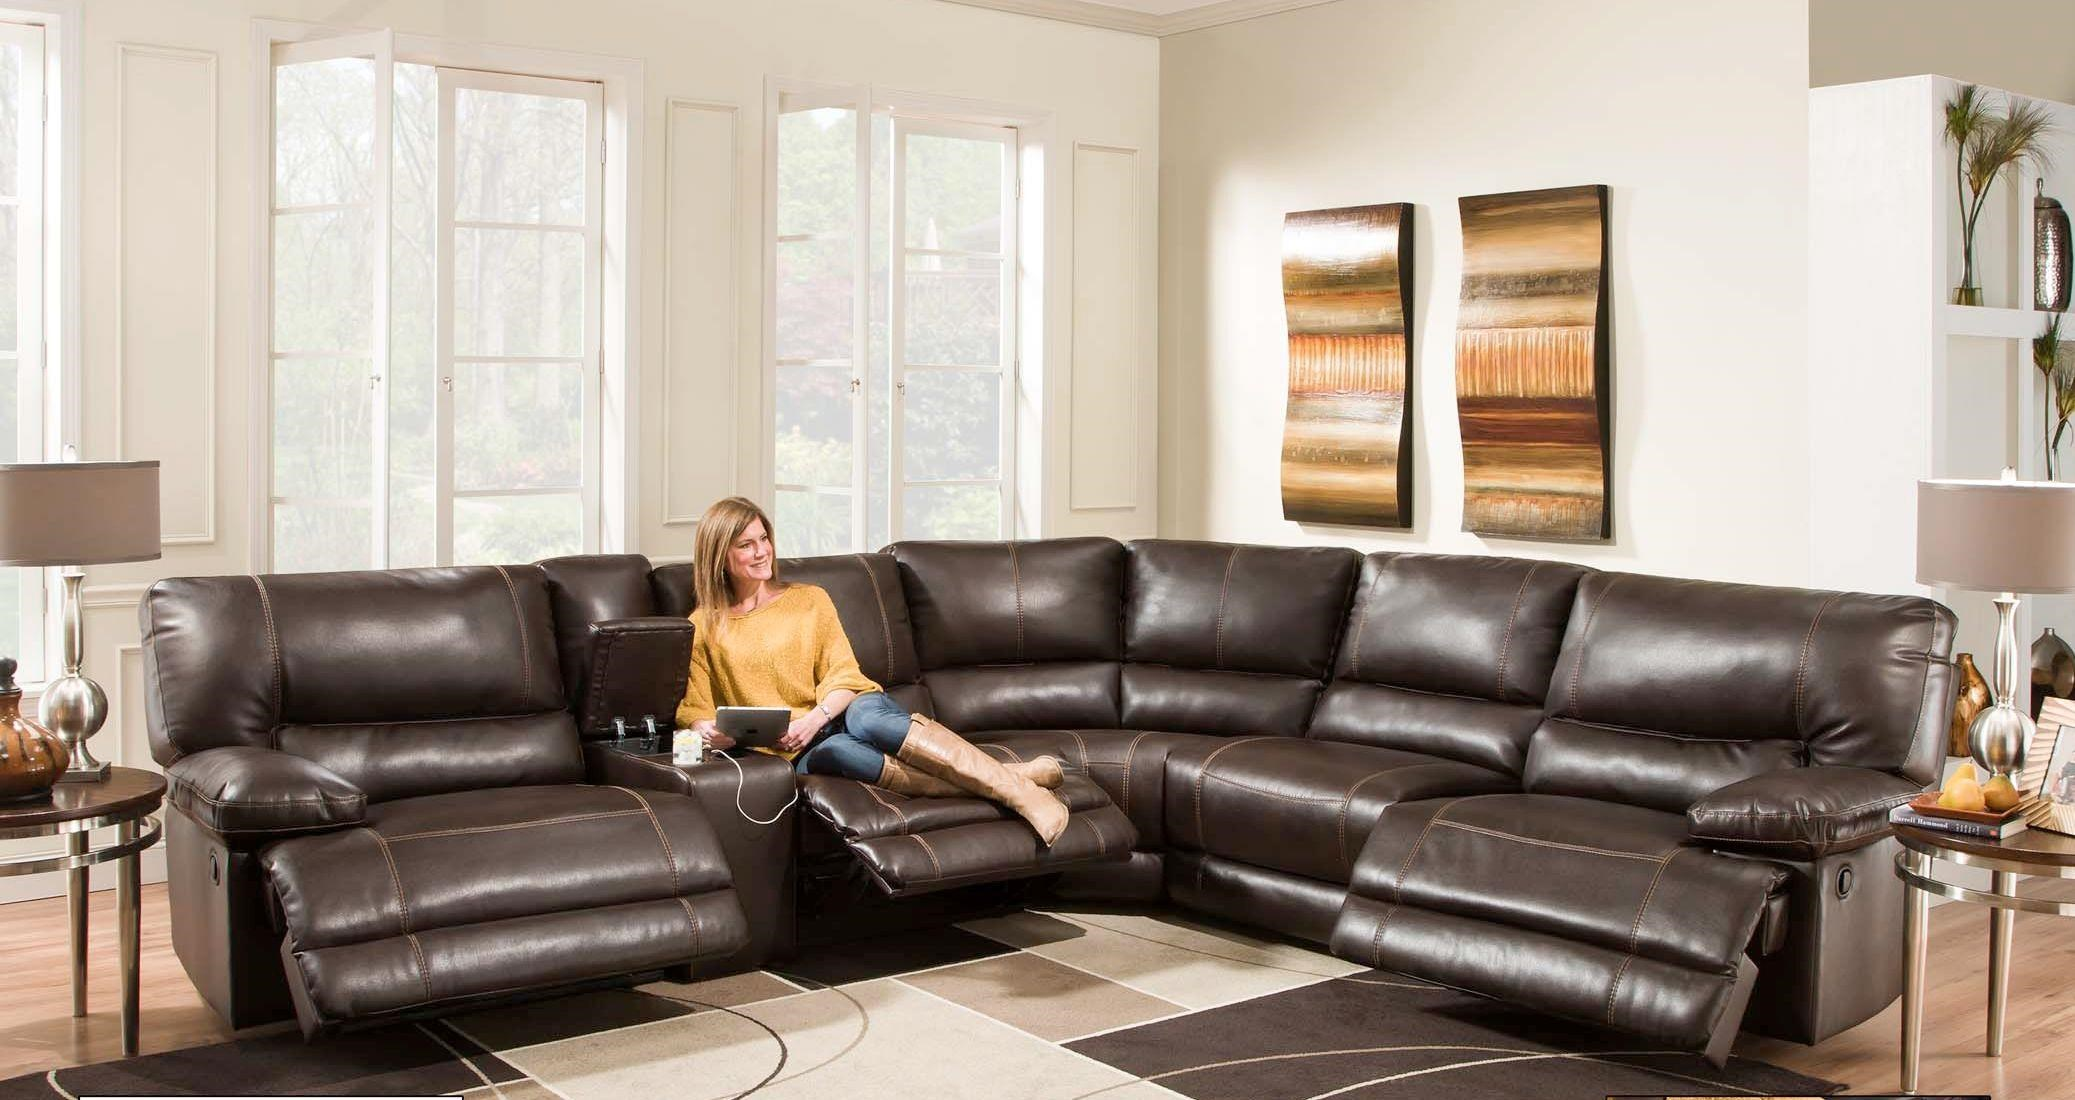 american furniture af800 reclining sectional sofa seats 5 miskelly furniture reclining sectional sofa